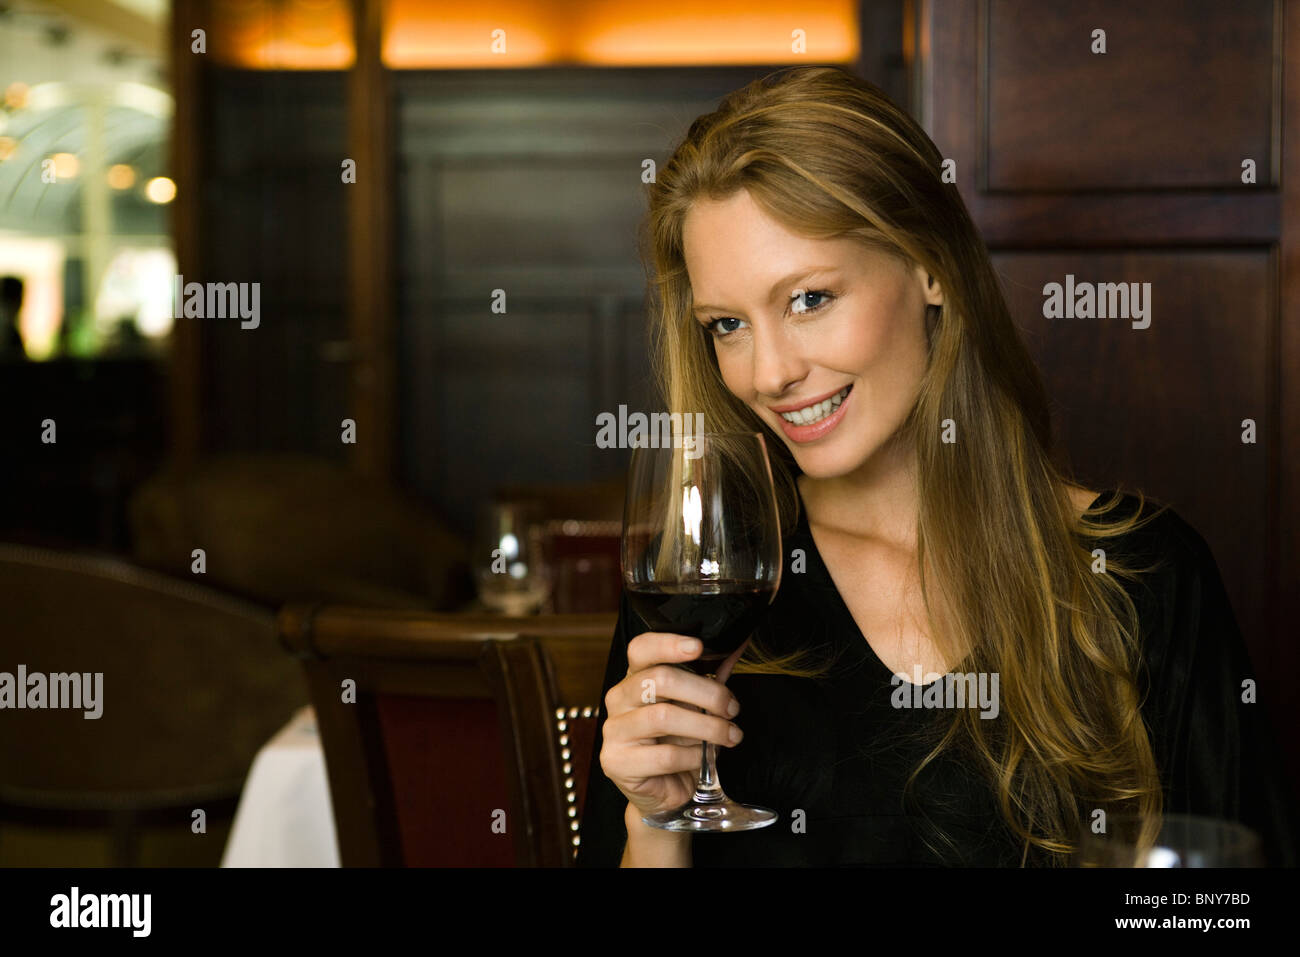 Woman enjoying glass of red wine in restaurant - Stock Image